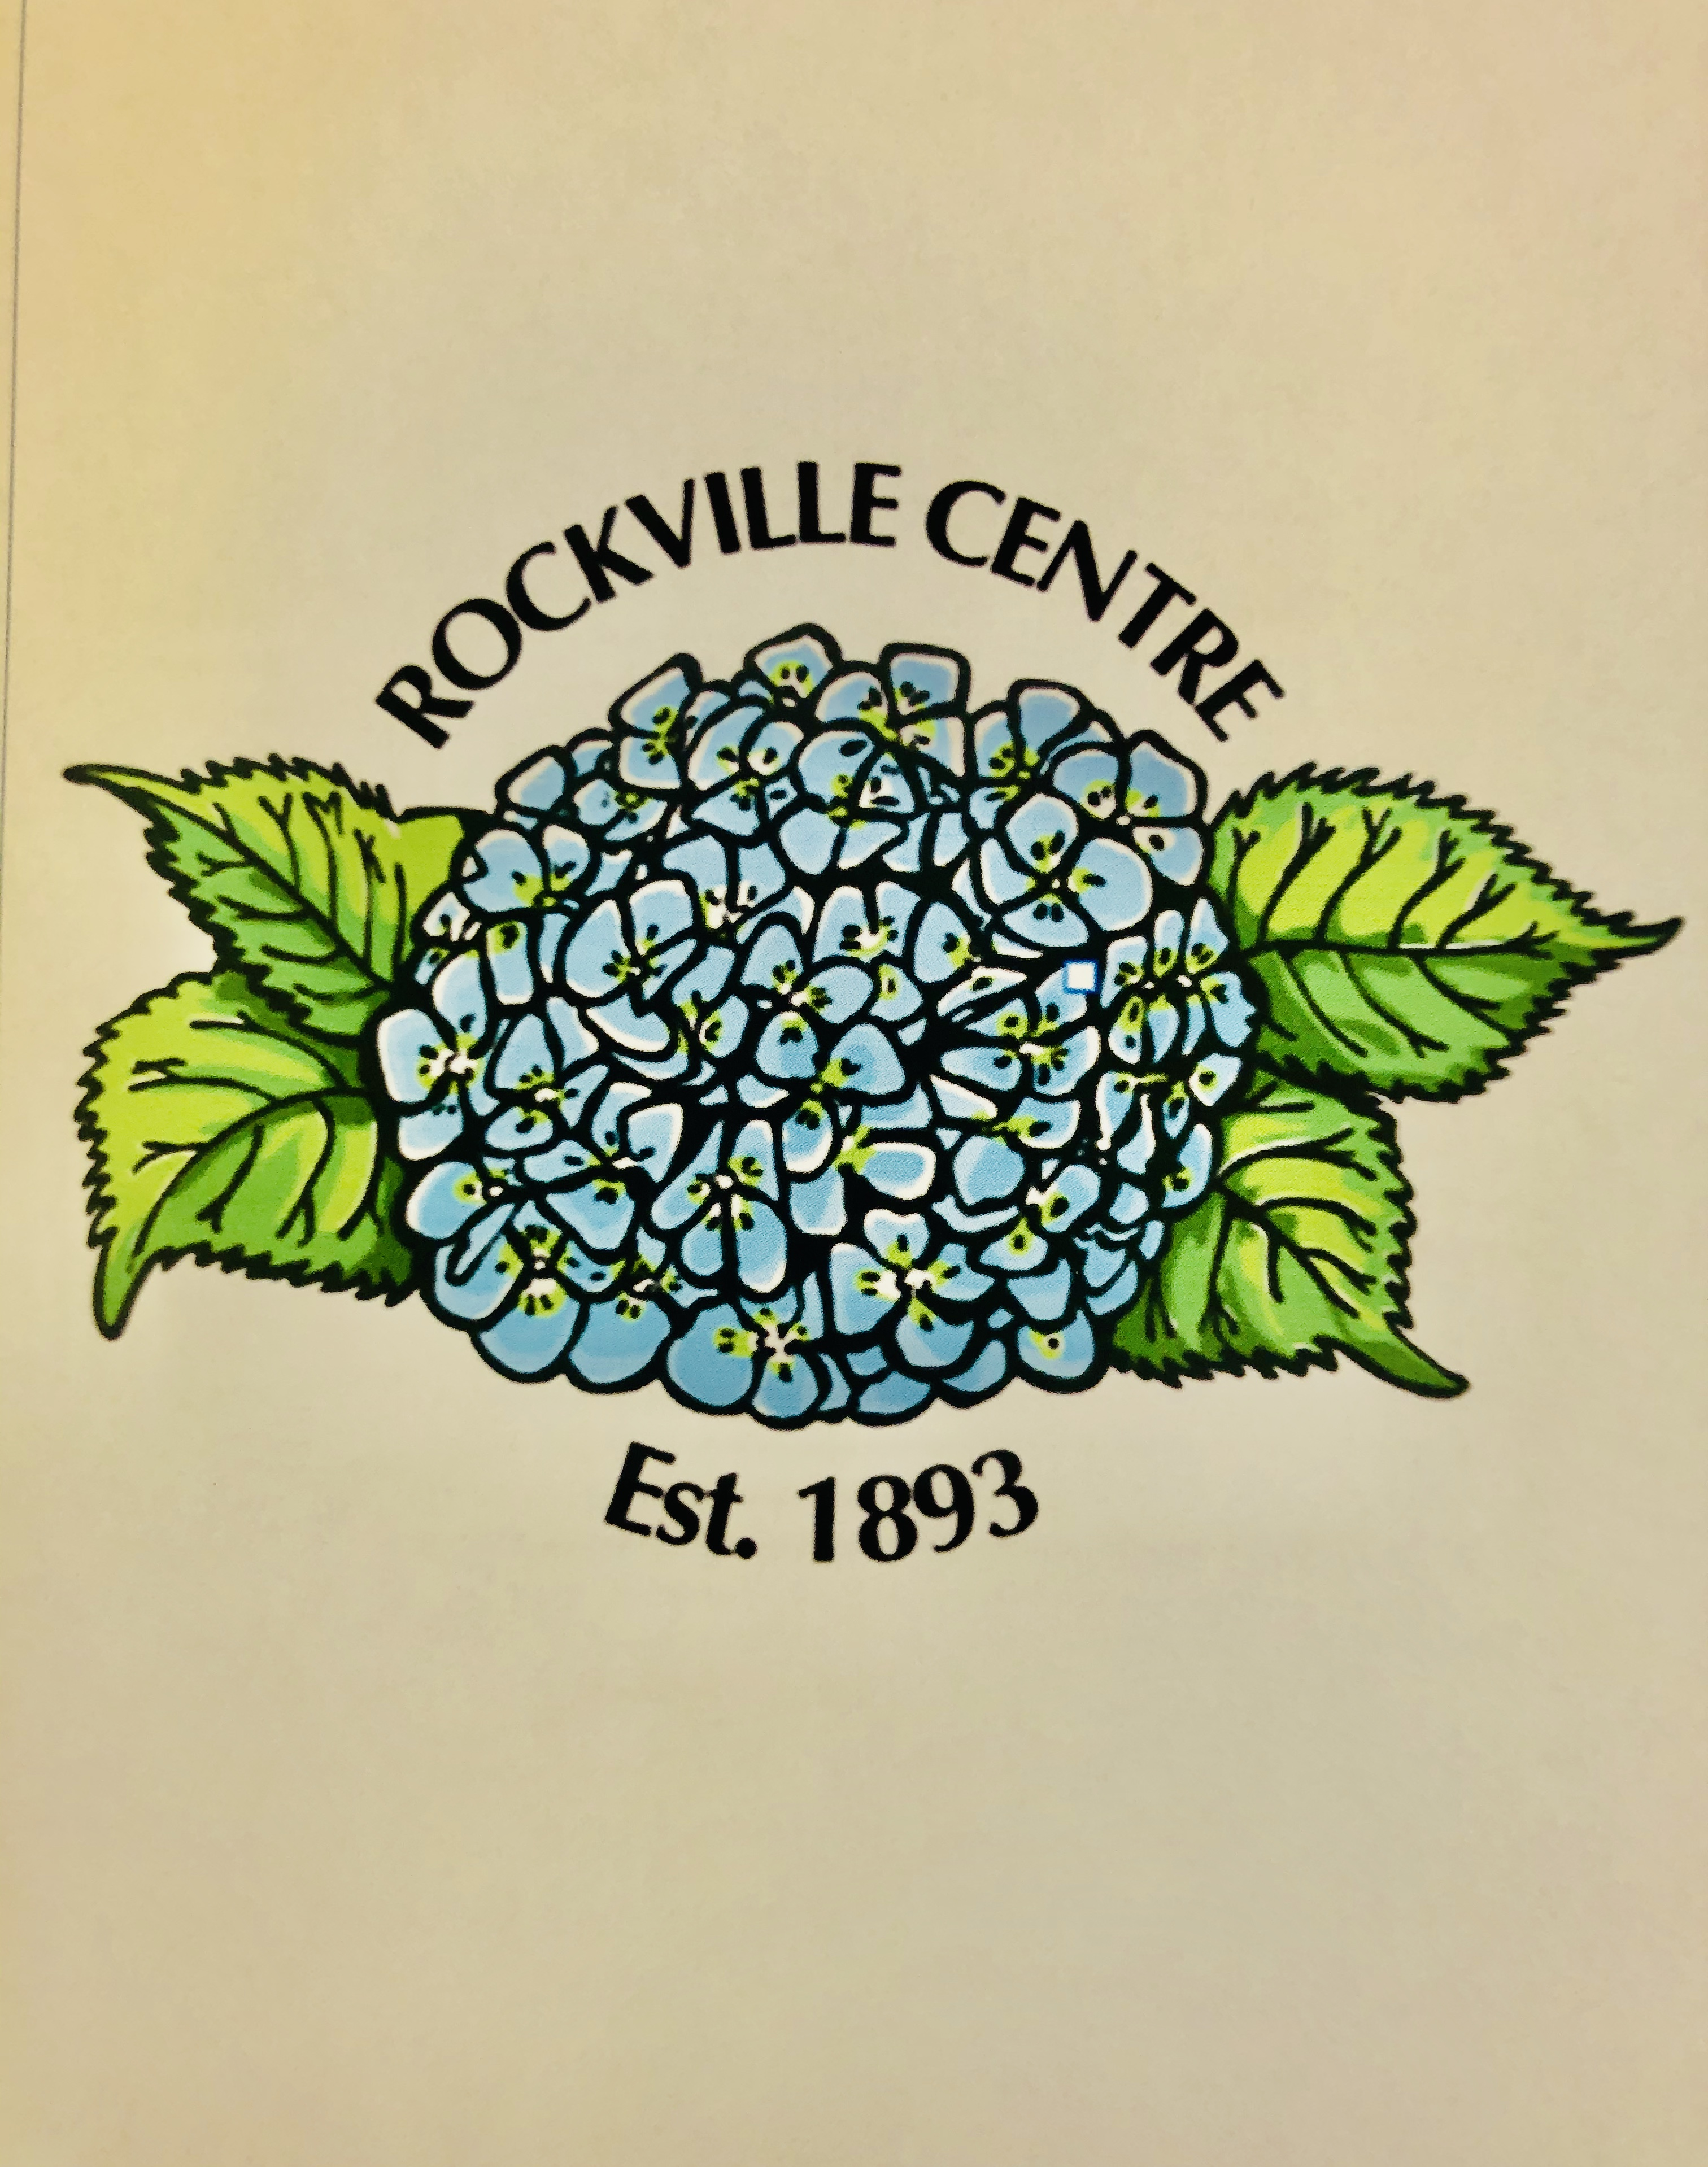 Blue hydrangea with Rockville Centre above and est. 1893 below